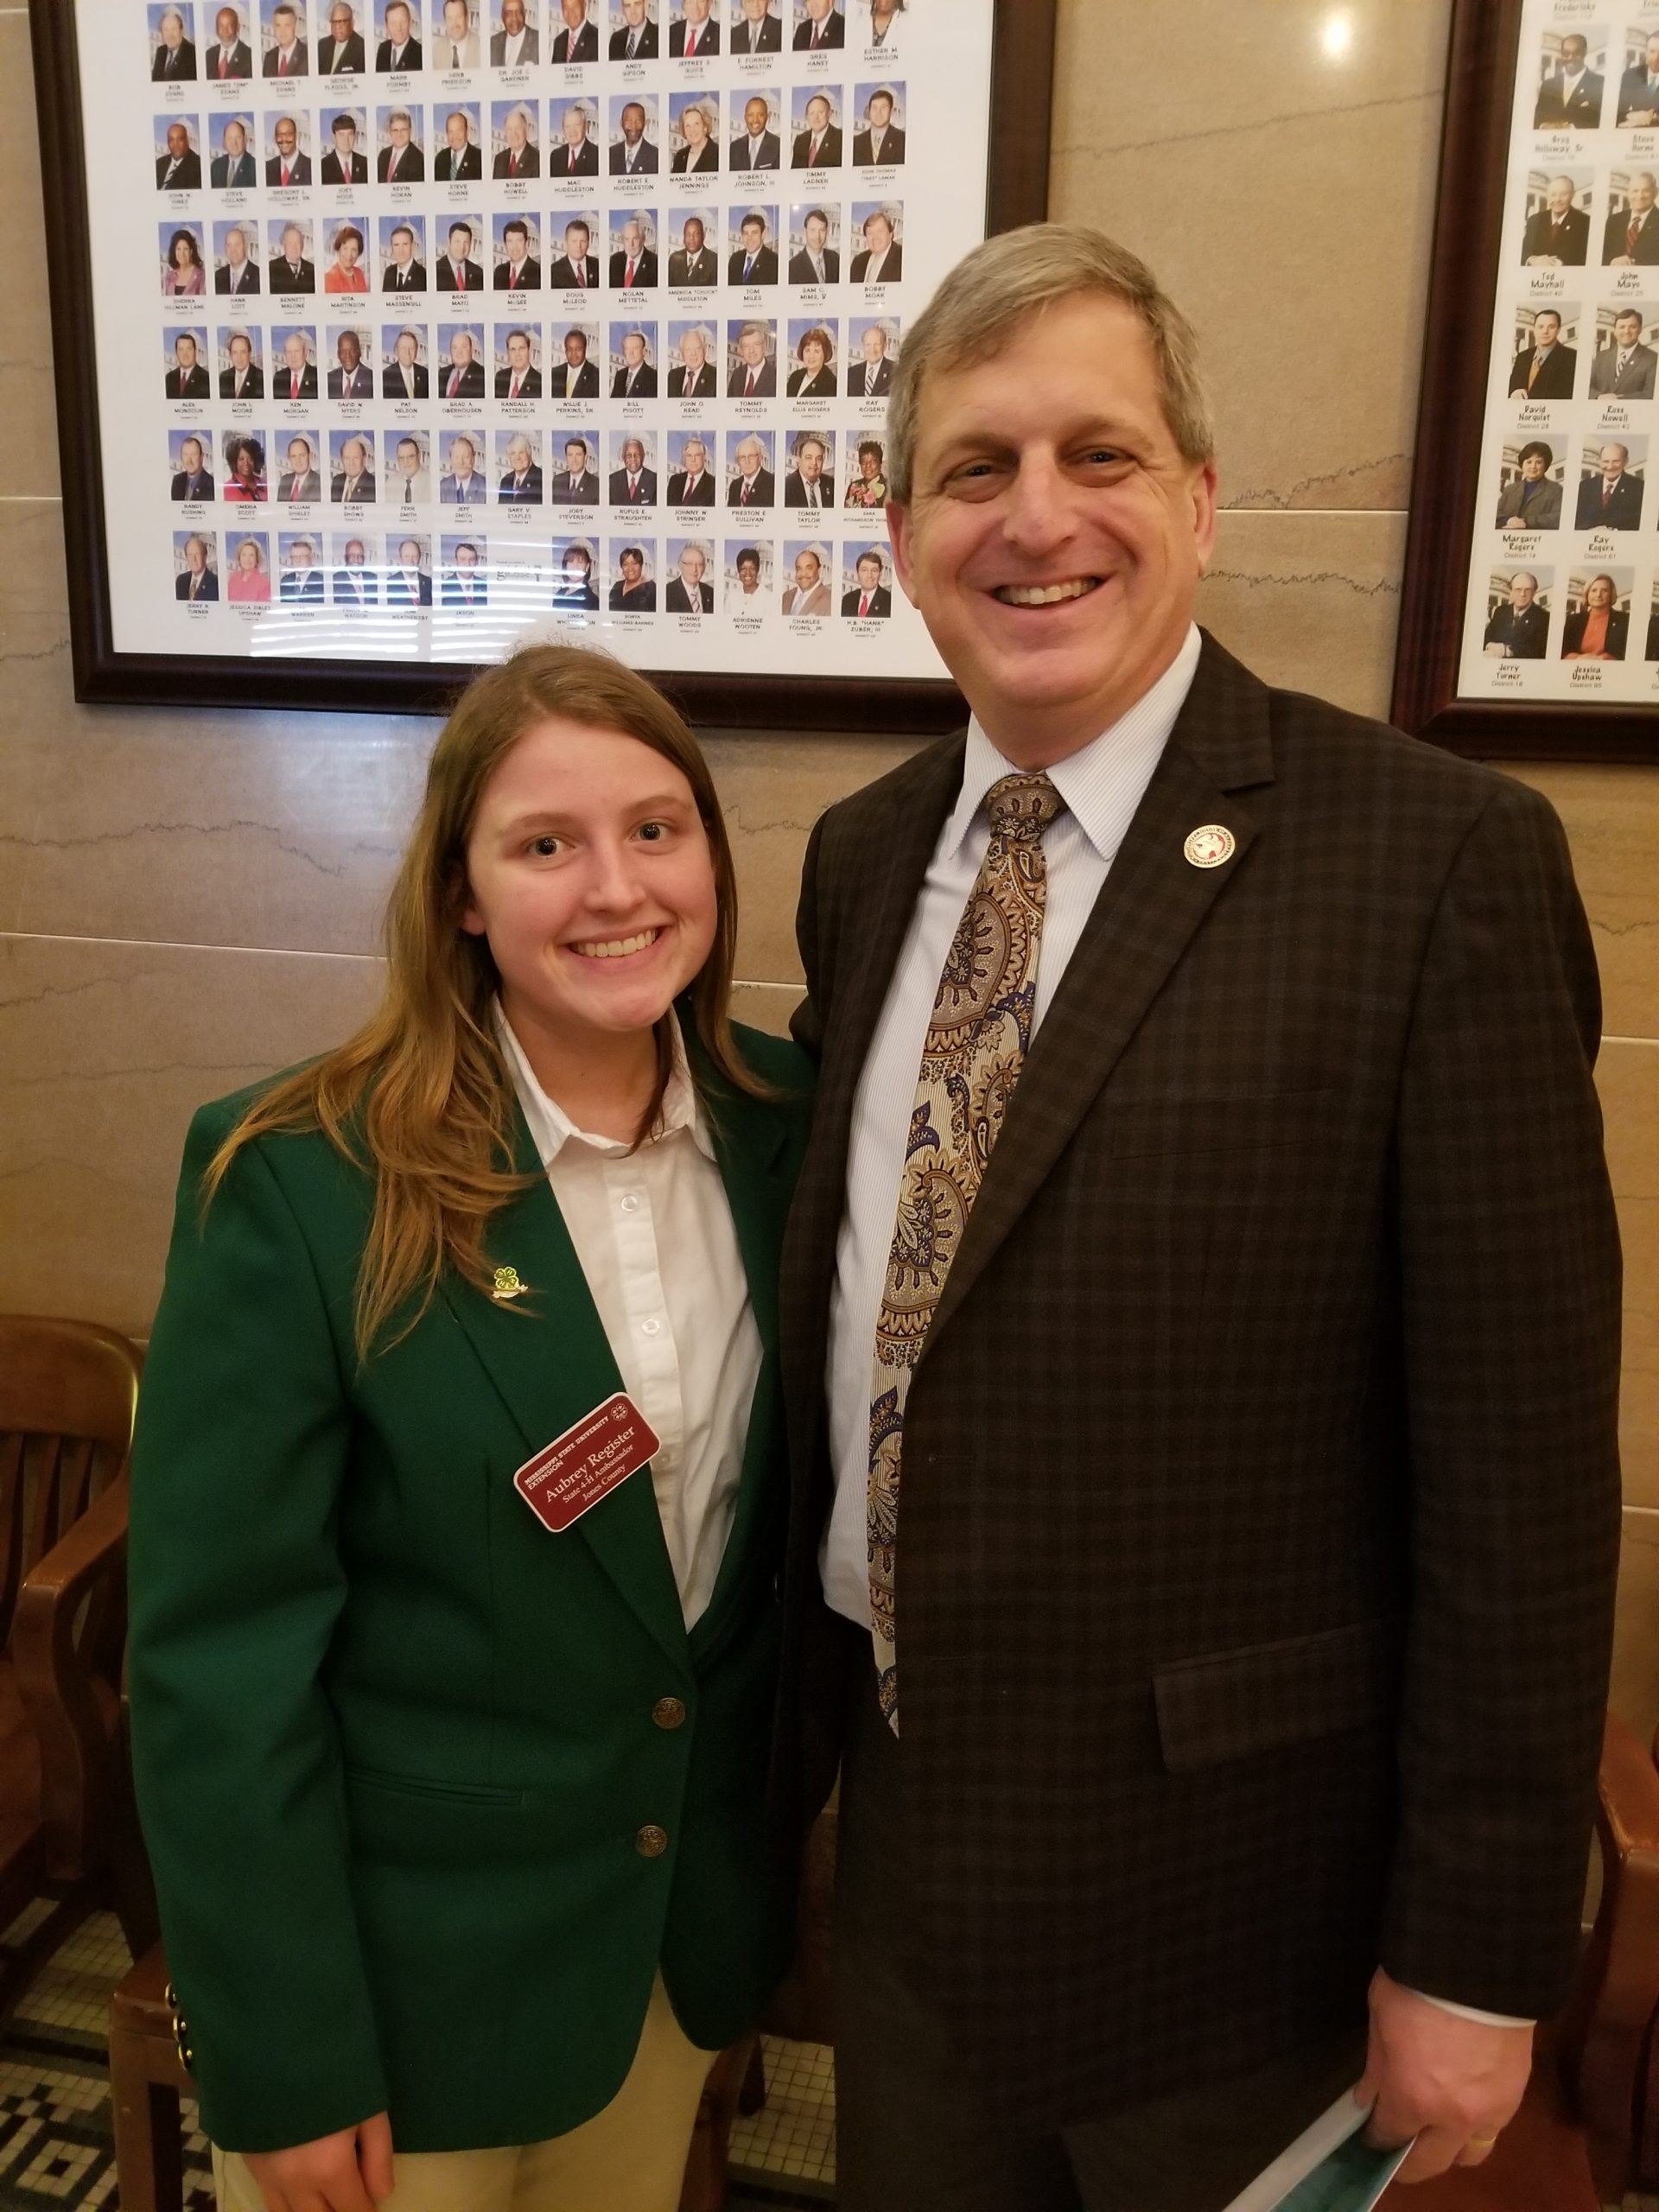 Aubrey Register is a member of the Jones County 4-H and also the state ambassador 4-H team.